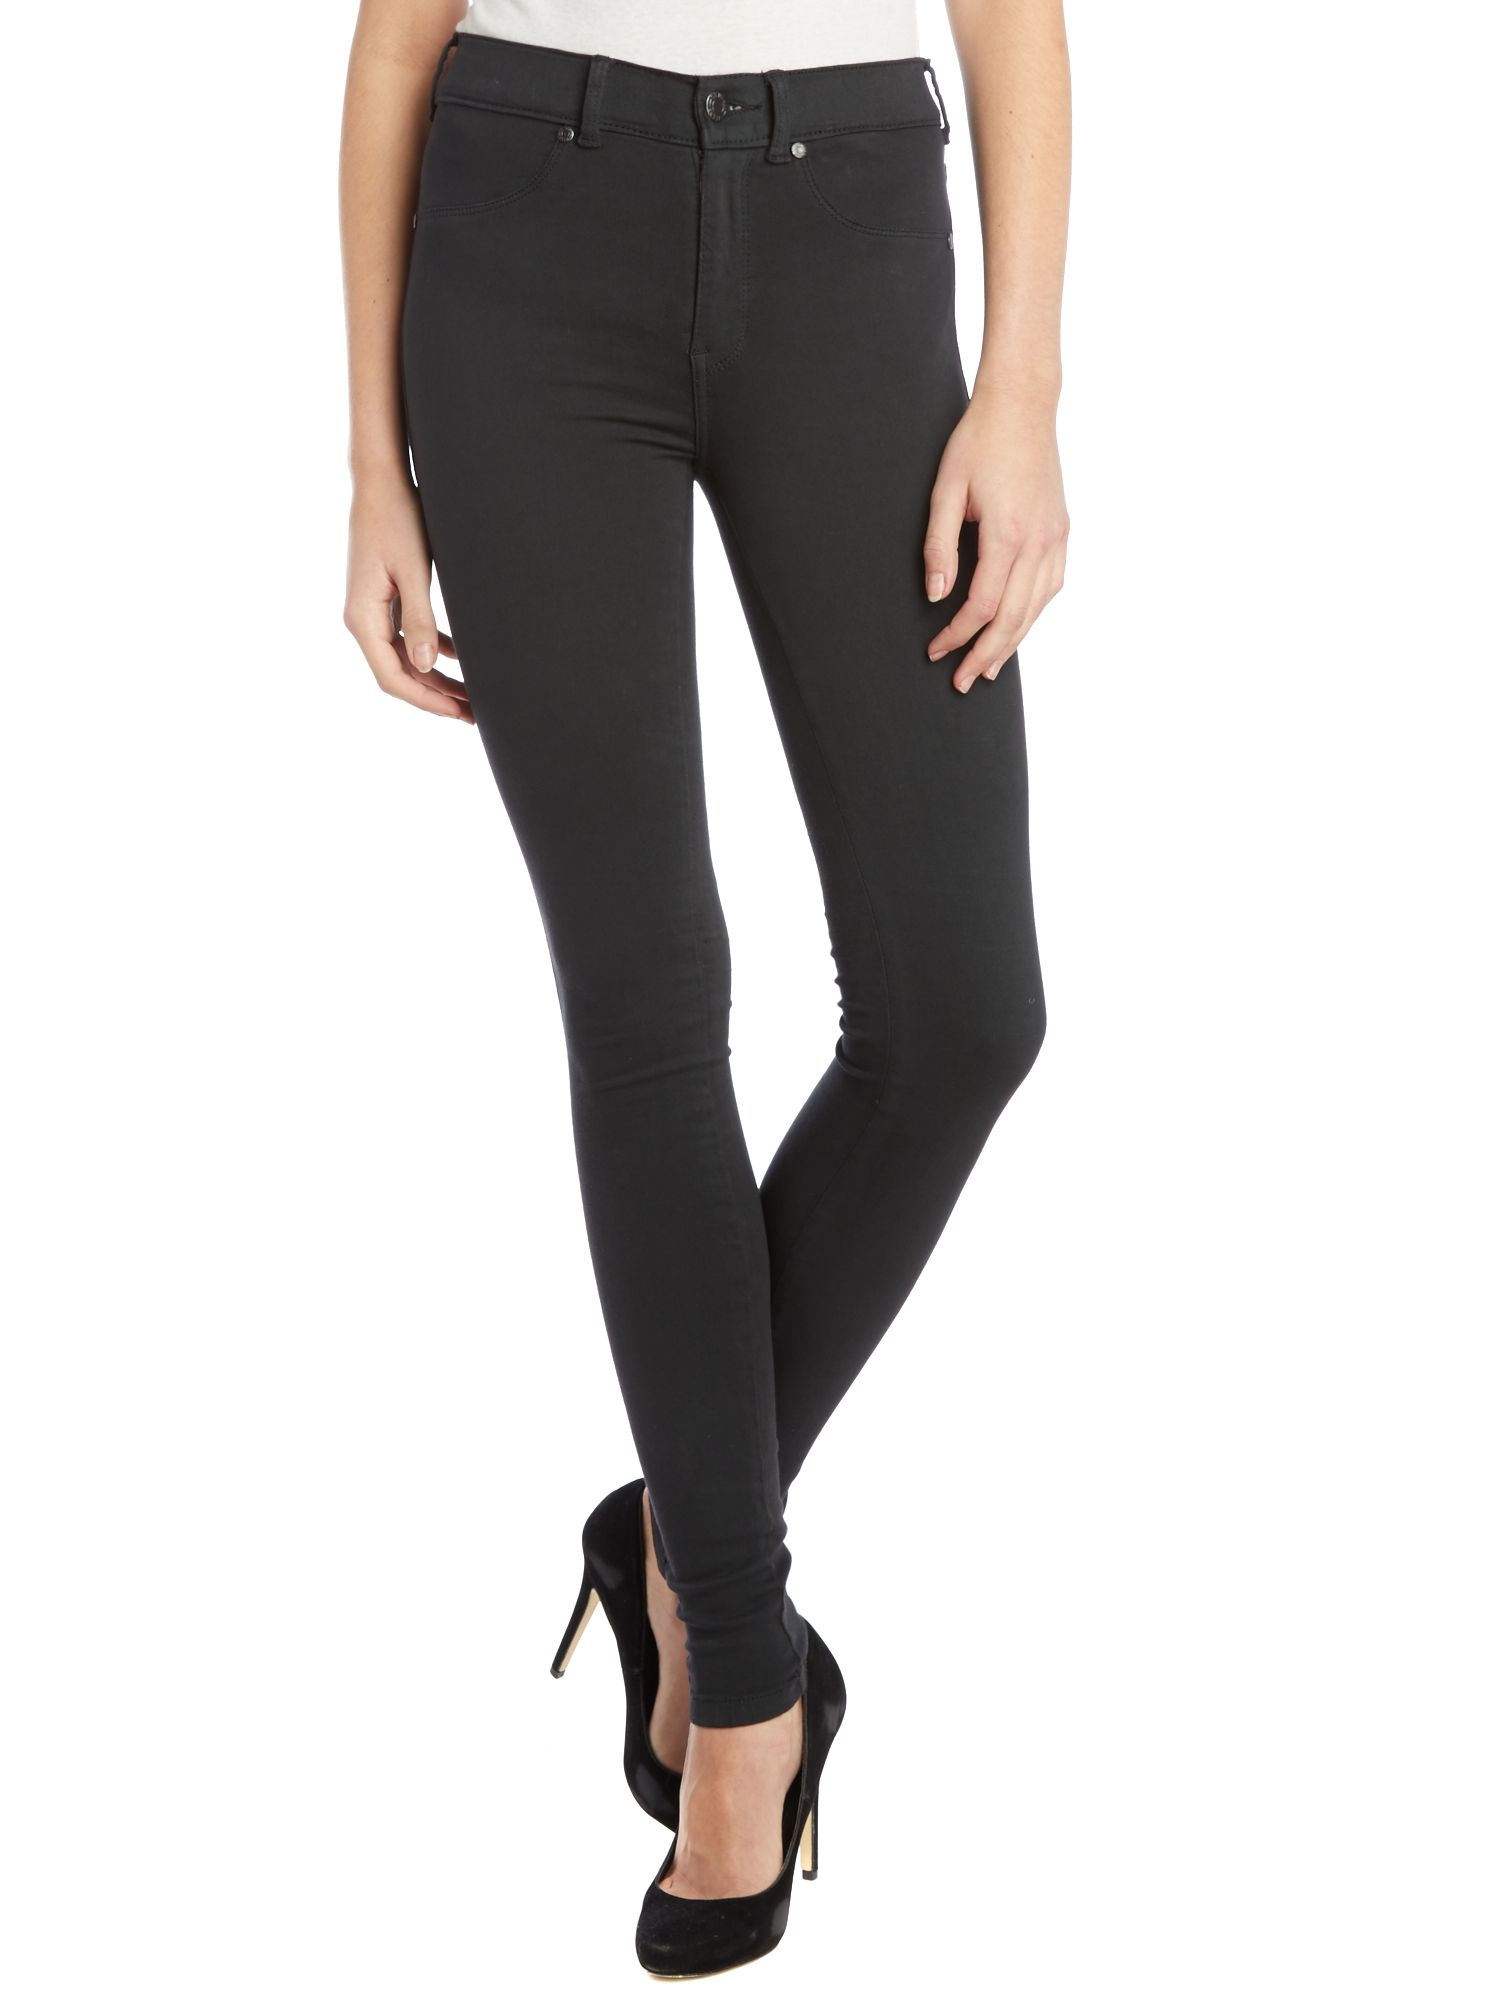 Plenty high-rise skinny jeans in Dark Grey